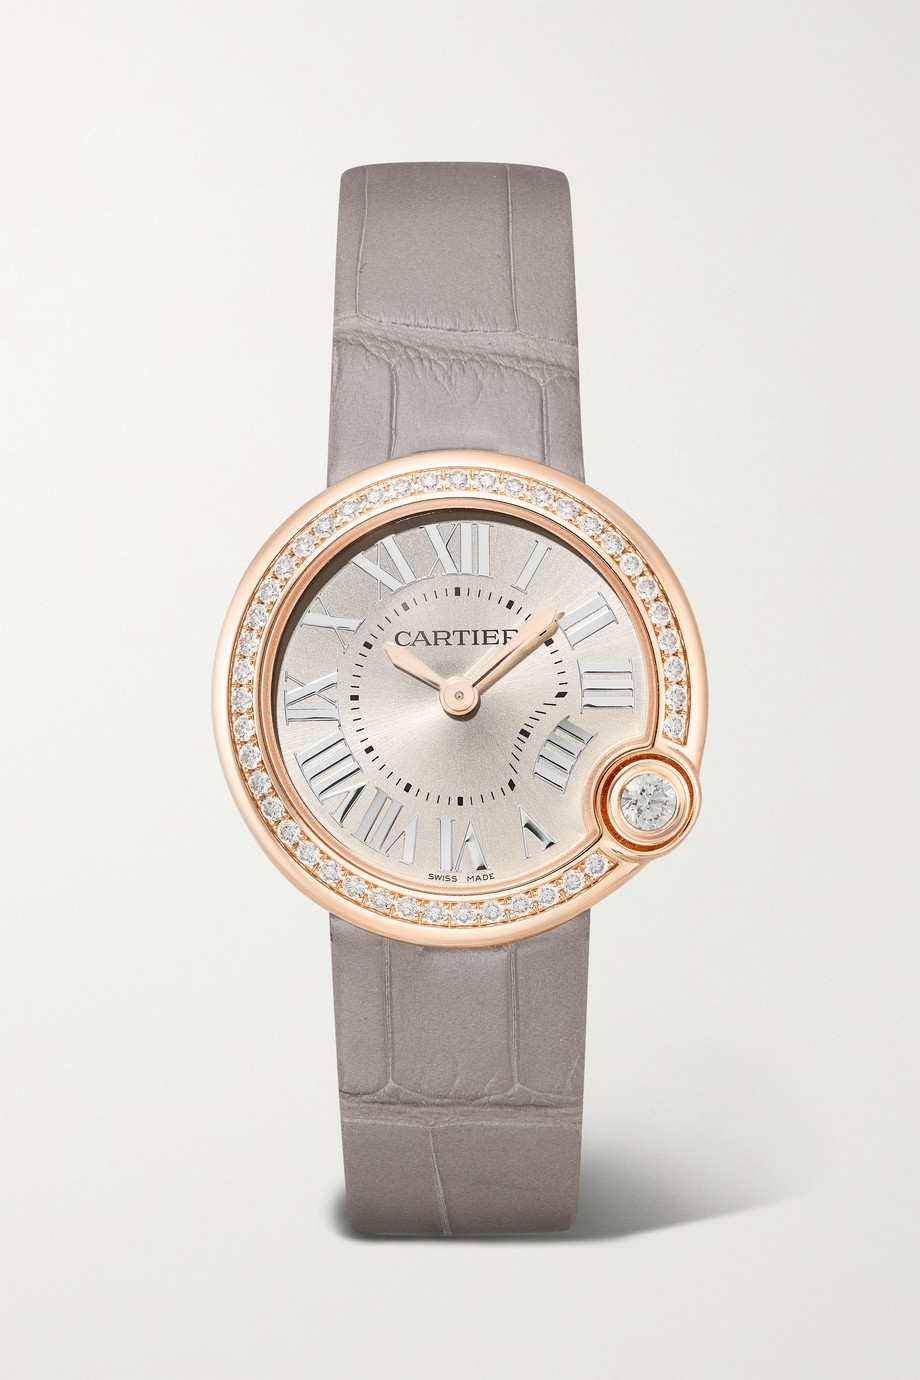 Cartier Ballon Blanc de Cartier 30mm 18-karat rose gold, alligator and diamond watch